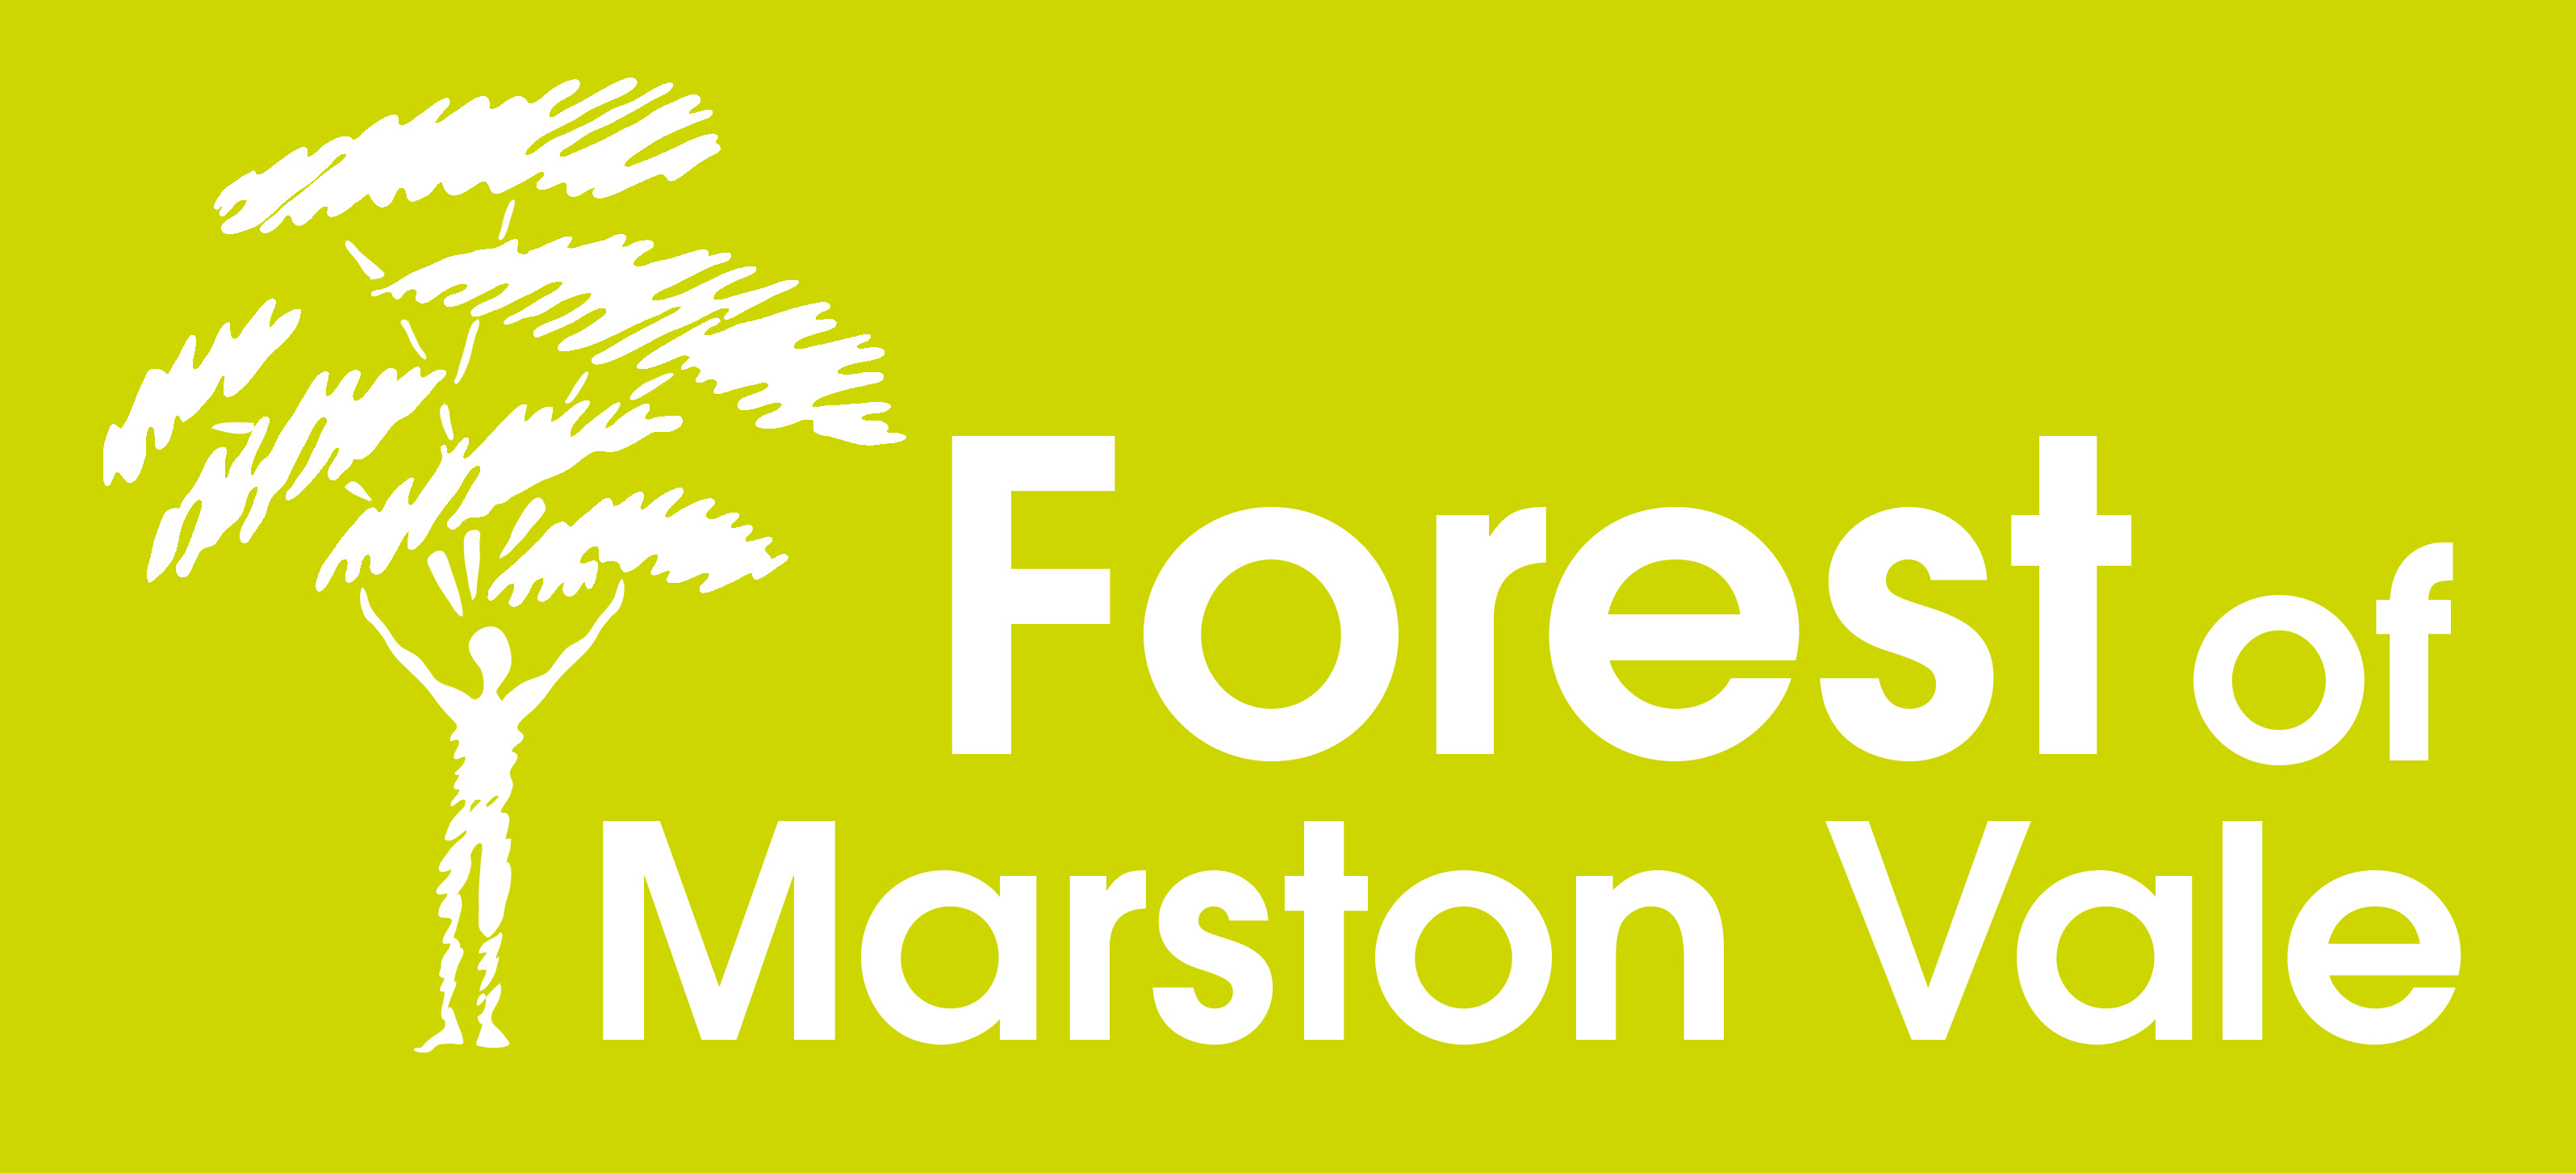 Forest of Marston Vale logo